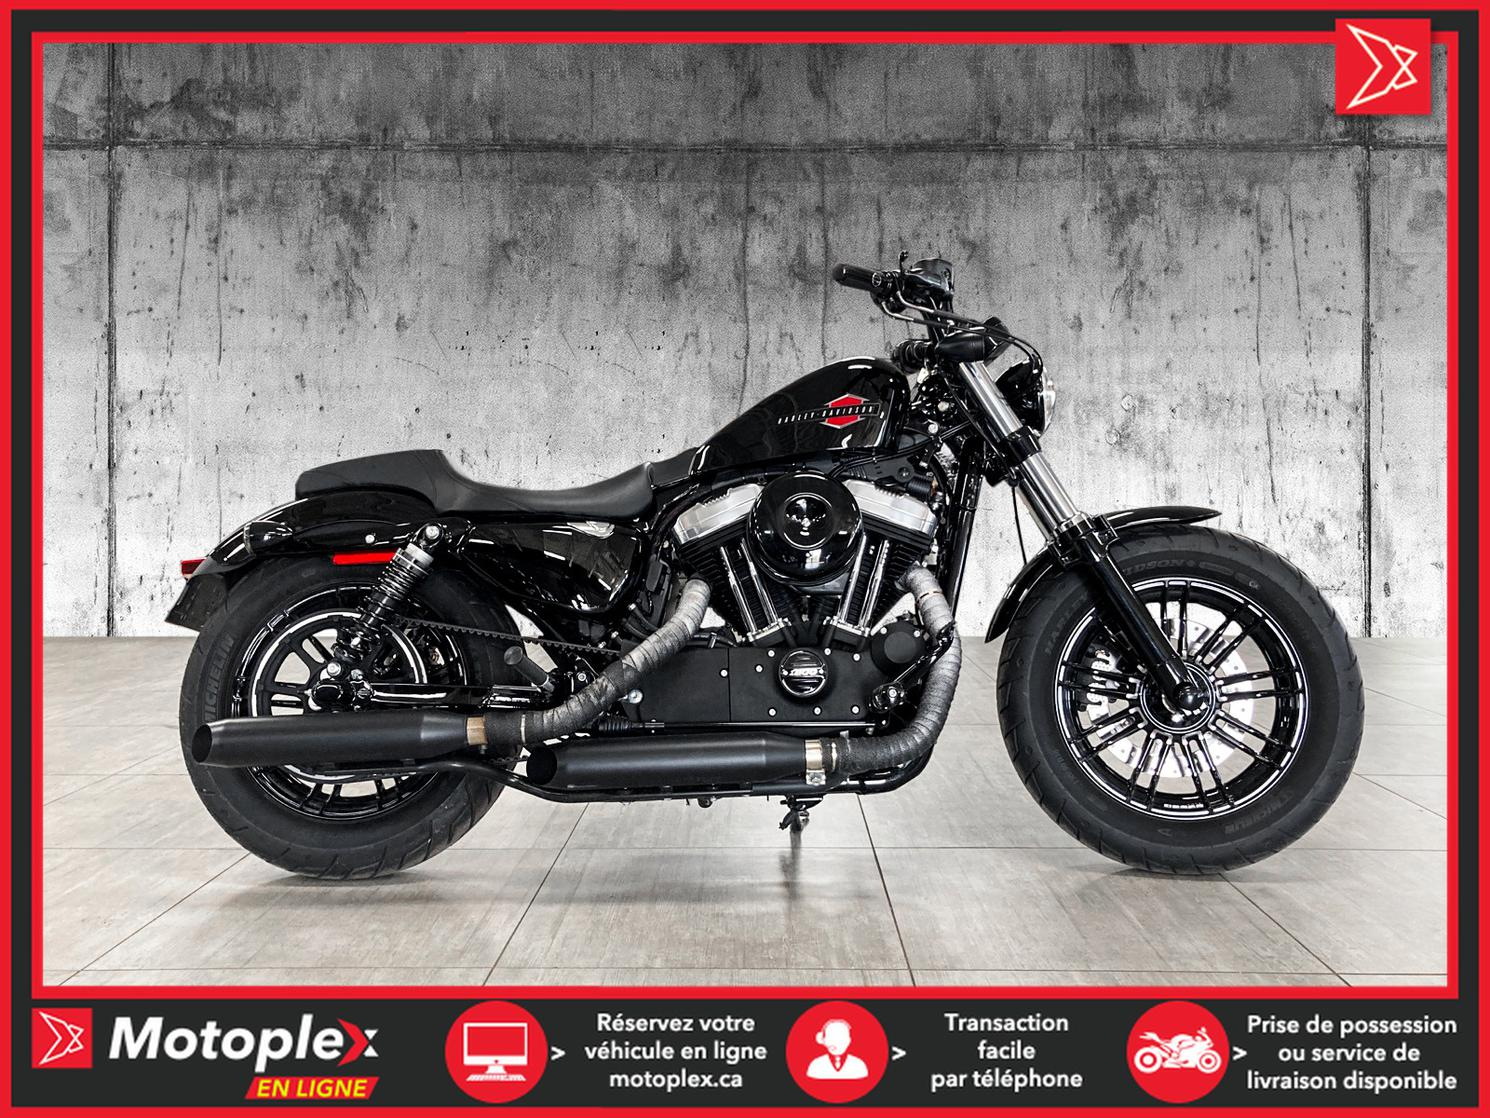 2019 Harley-Davidson SPORTSTER FORTY-EIGHT XL200X 47$/SEMAINE